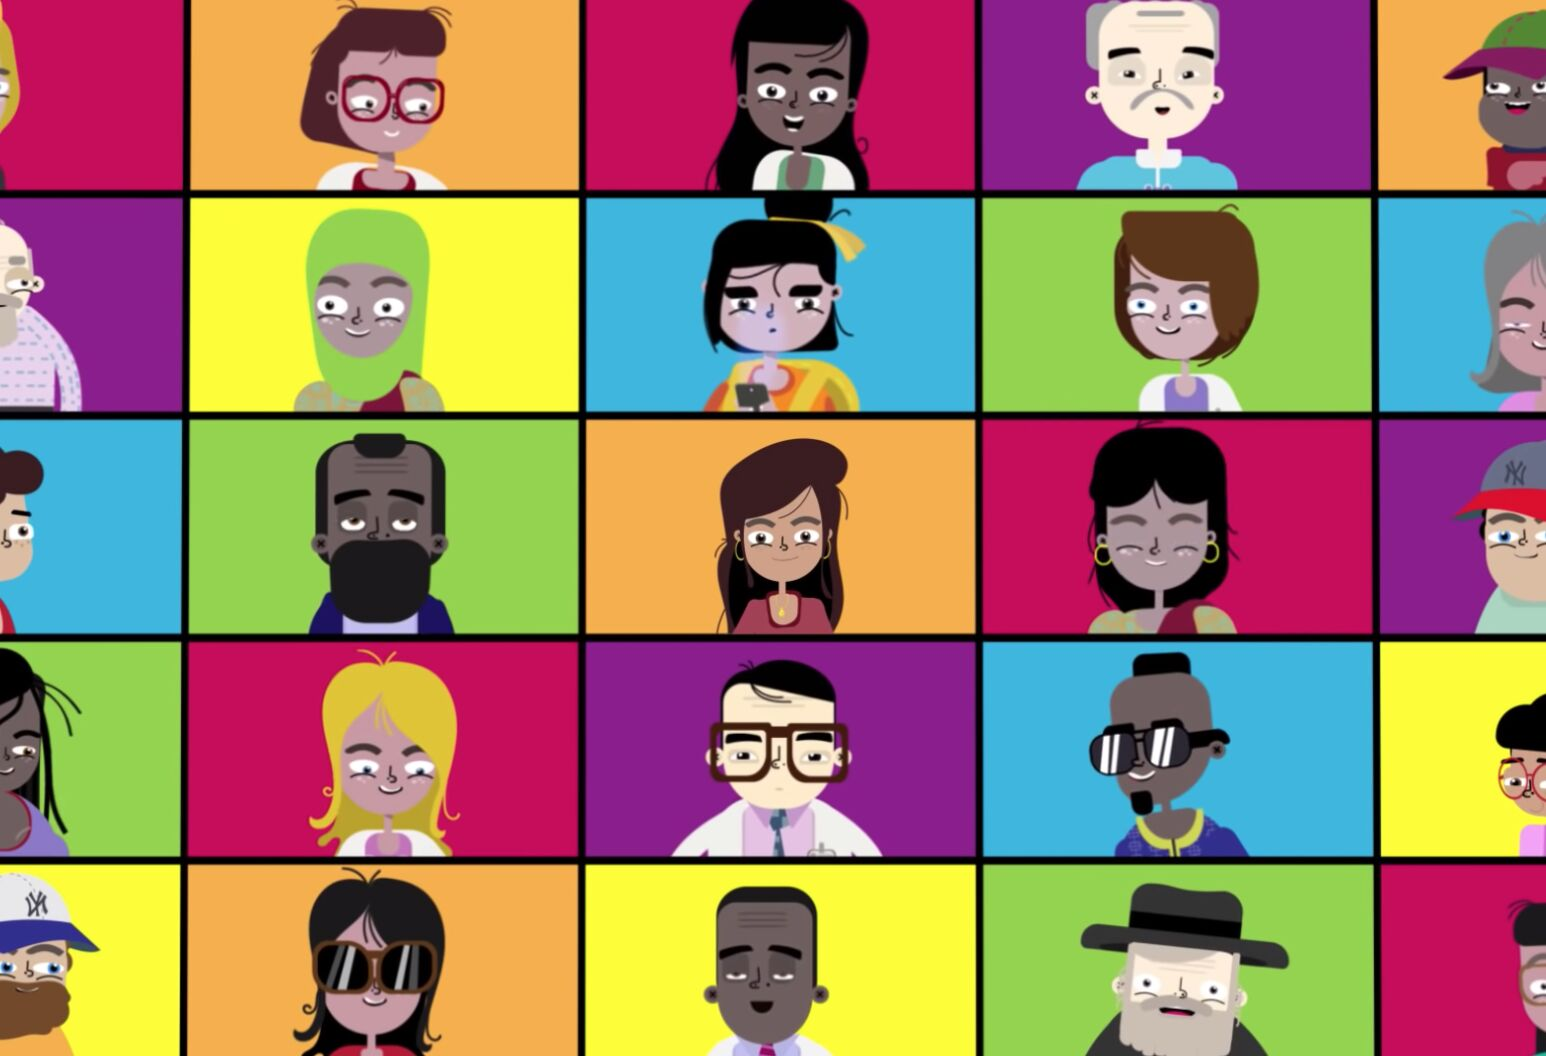 A large number of different cartoon people arranged in a grid